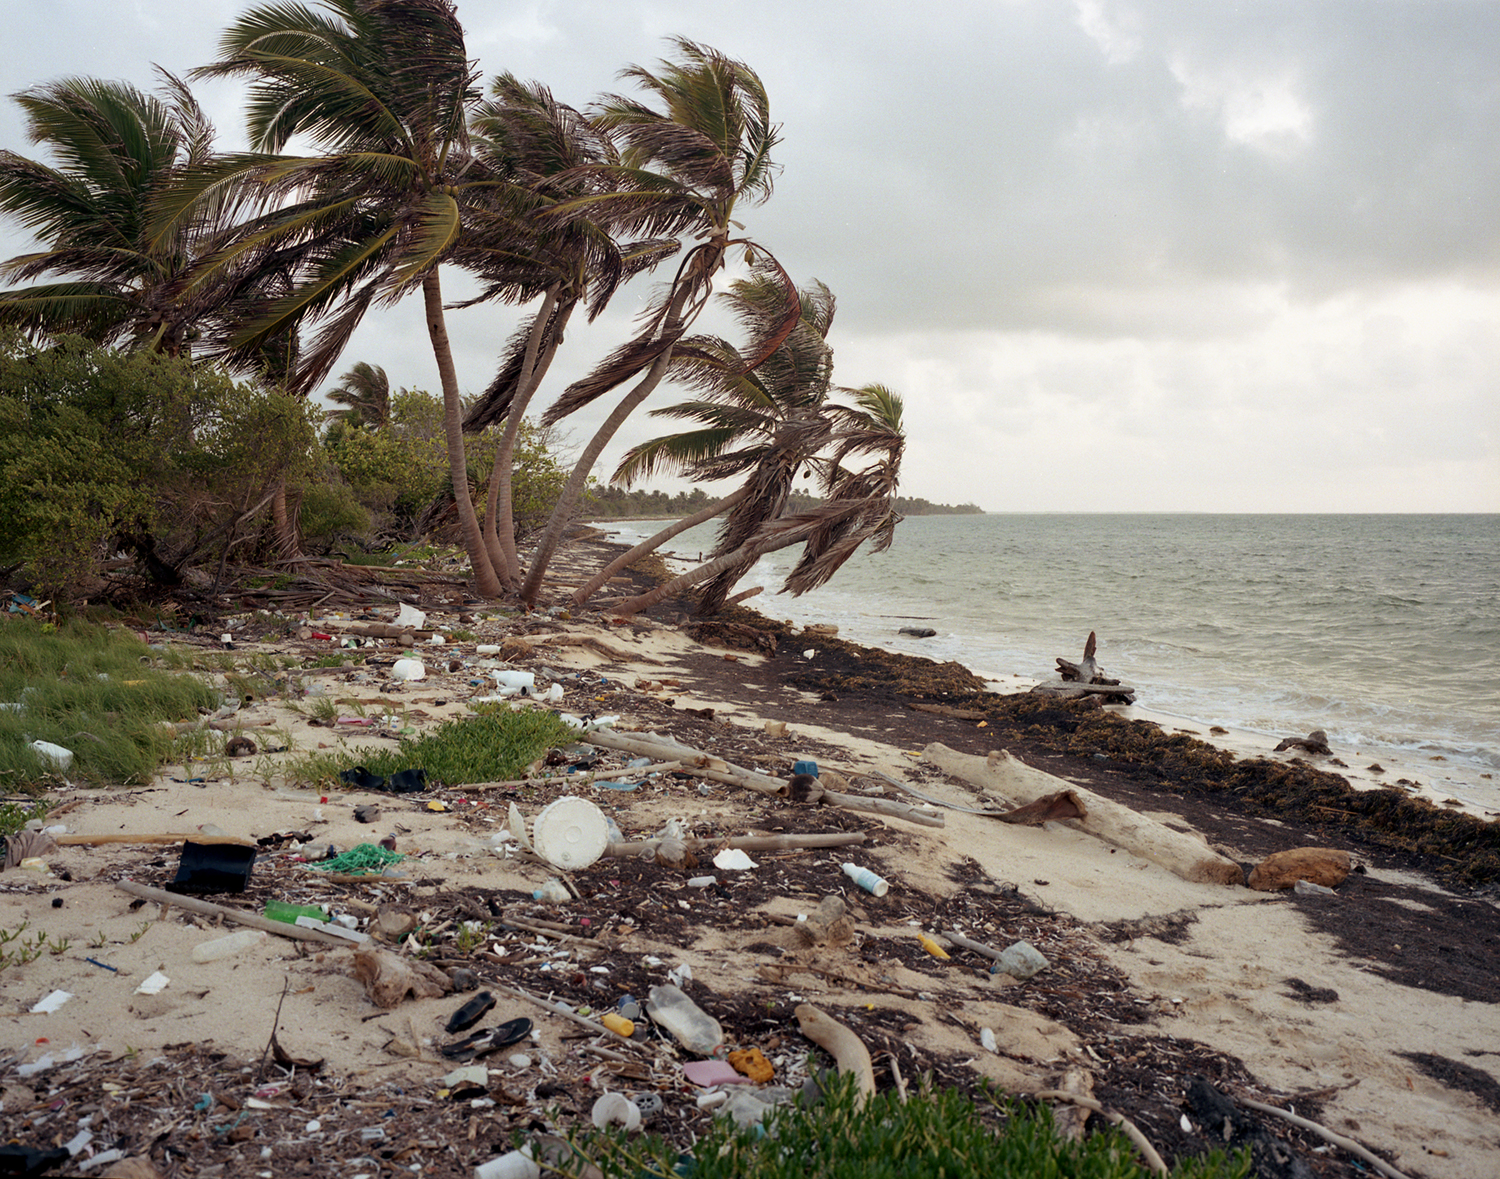 Coconut trees surrounded by multiple pieces of waste plastic, much of which is 'one time use'. South of Mahahual.